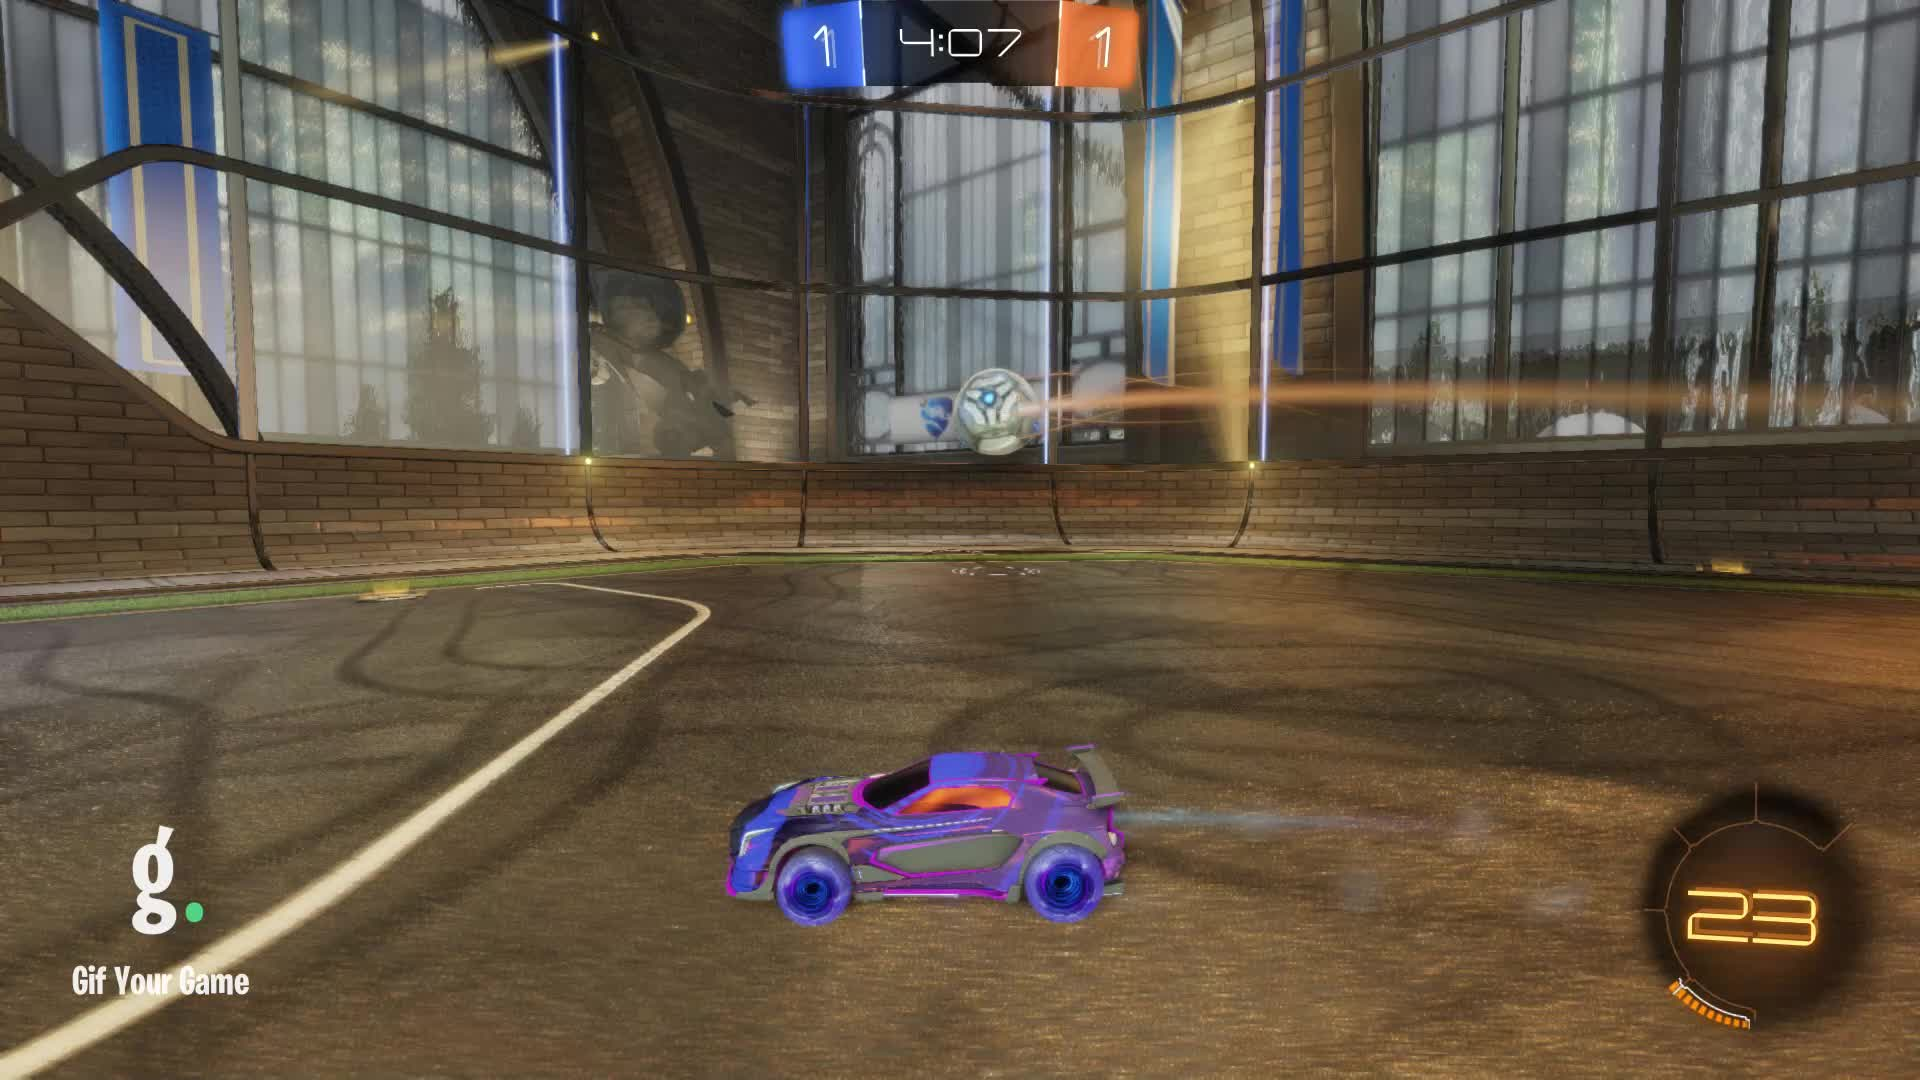 Gif Your Game, GifYourGame, Goal, Rocket League, RocketLeague, traizen, Goal 3: ð_ð DMT GIFs